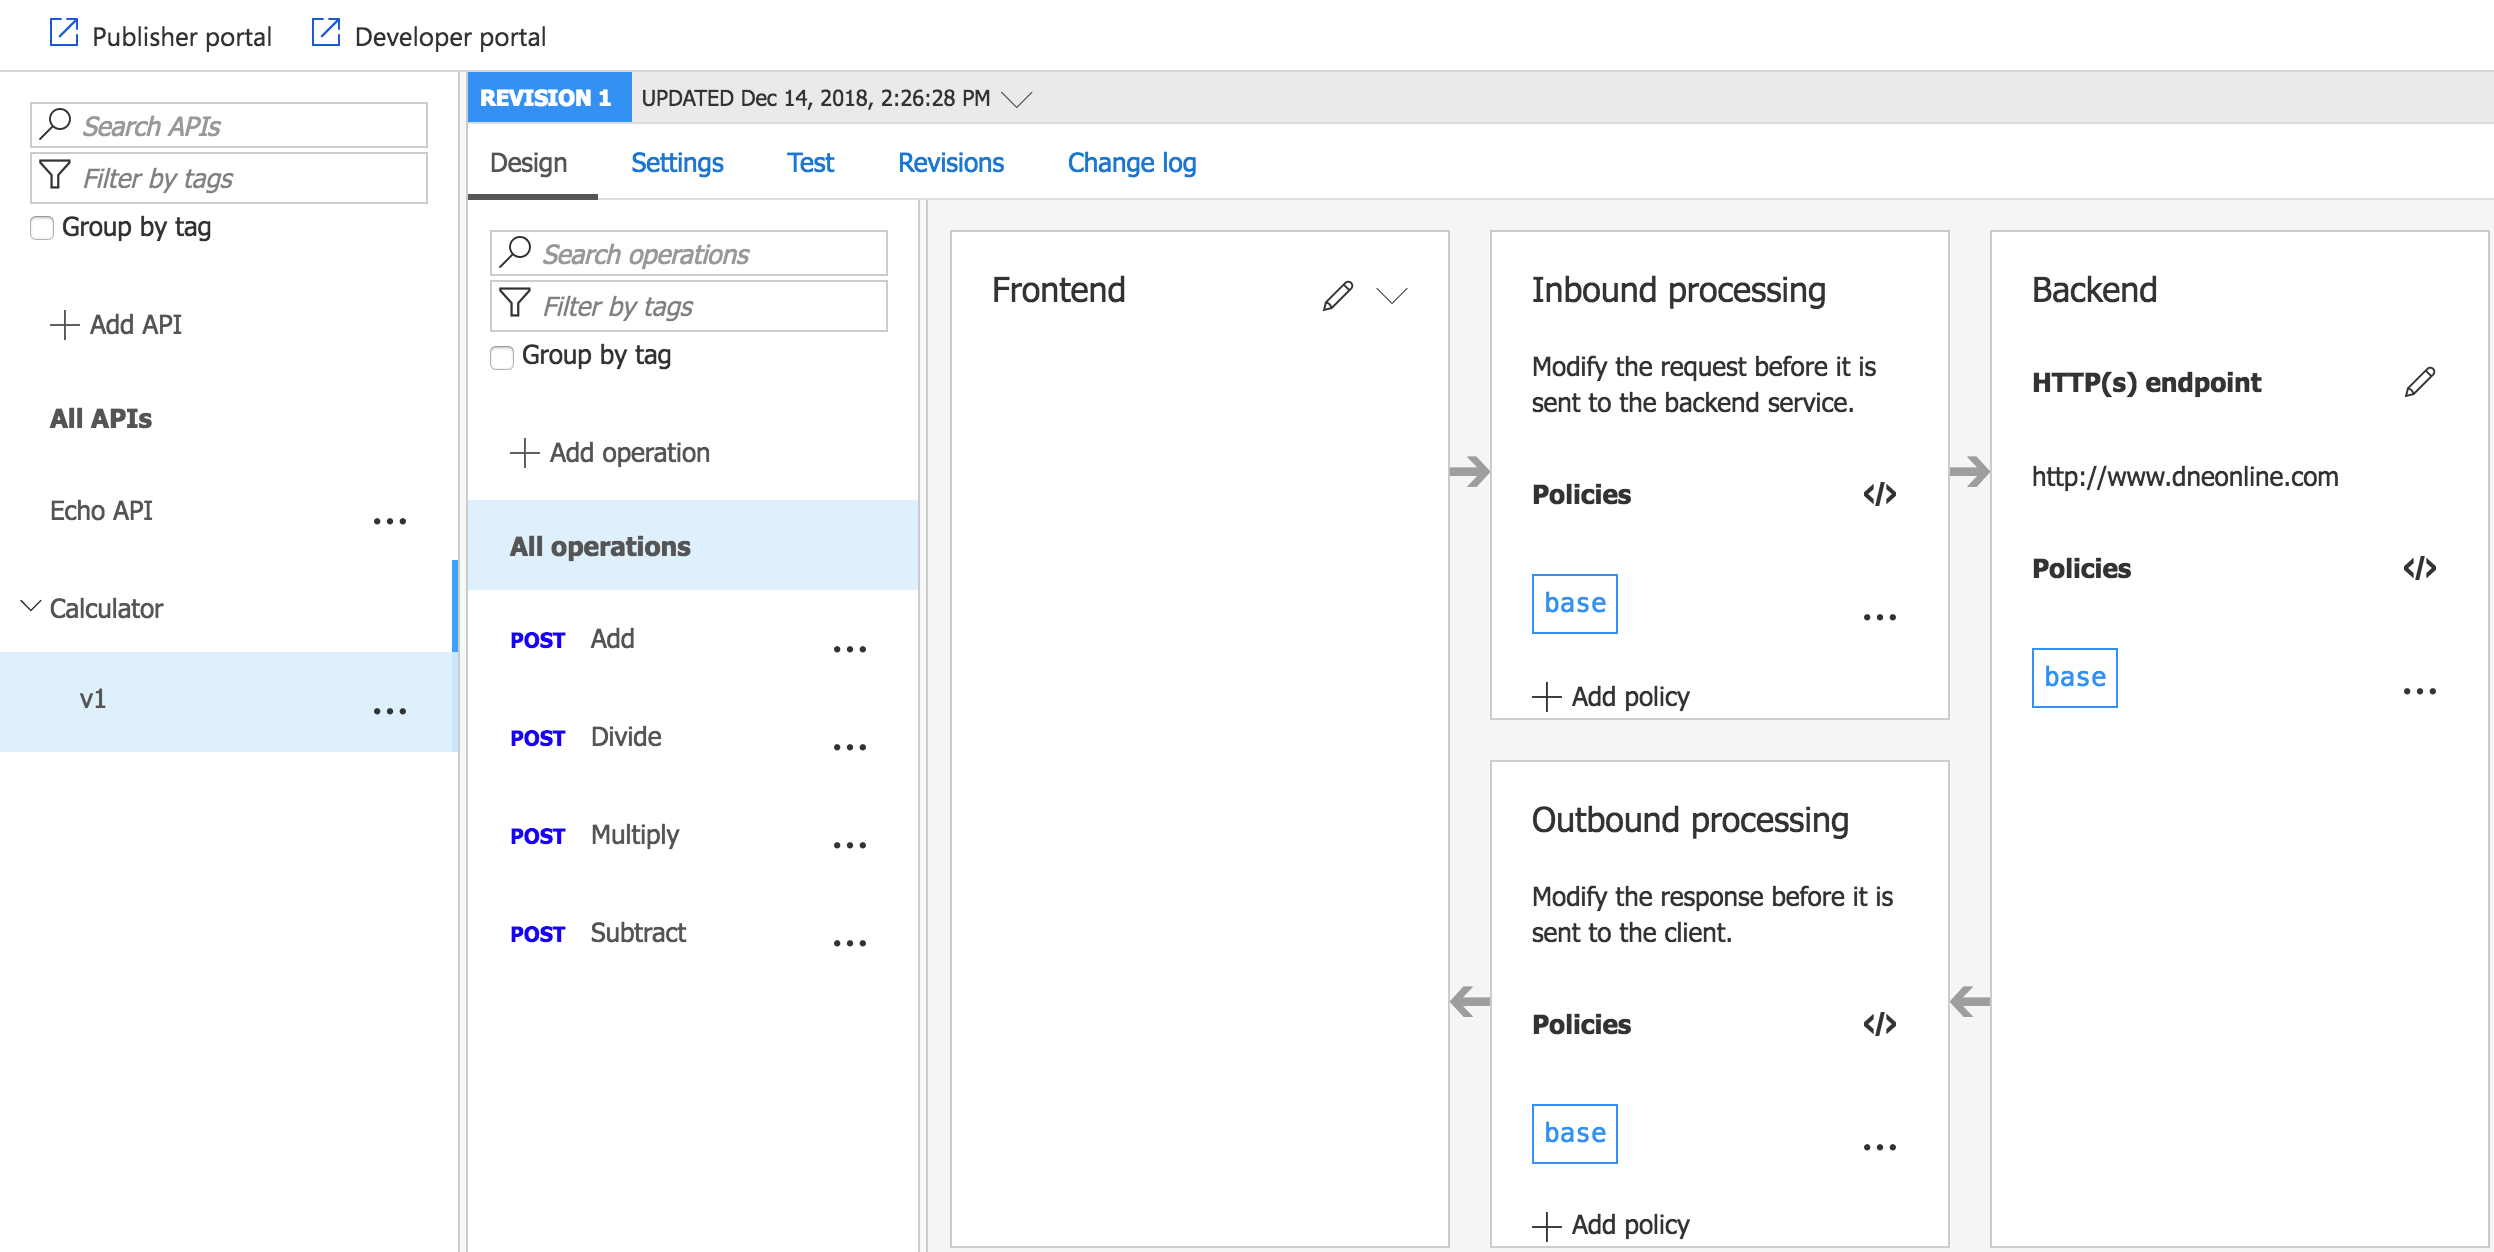 Migrating from SOAP to REST using Azure API Management